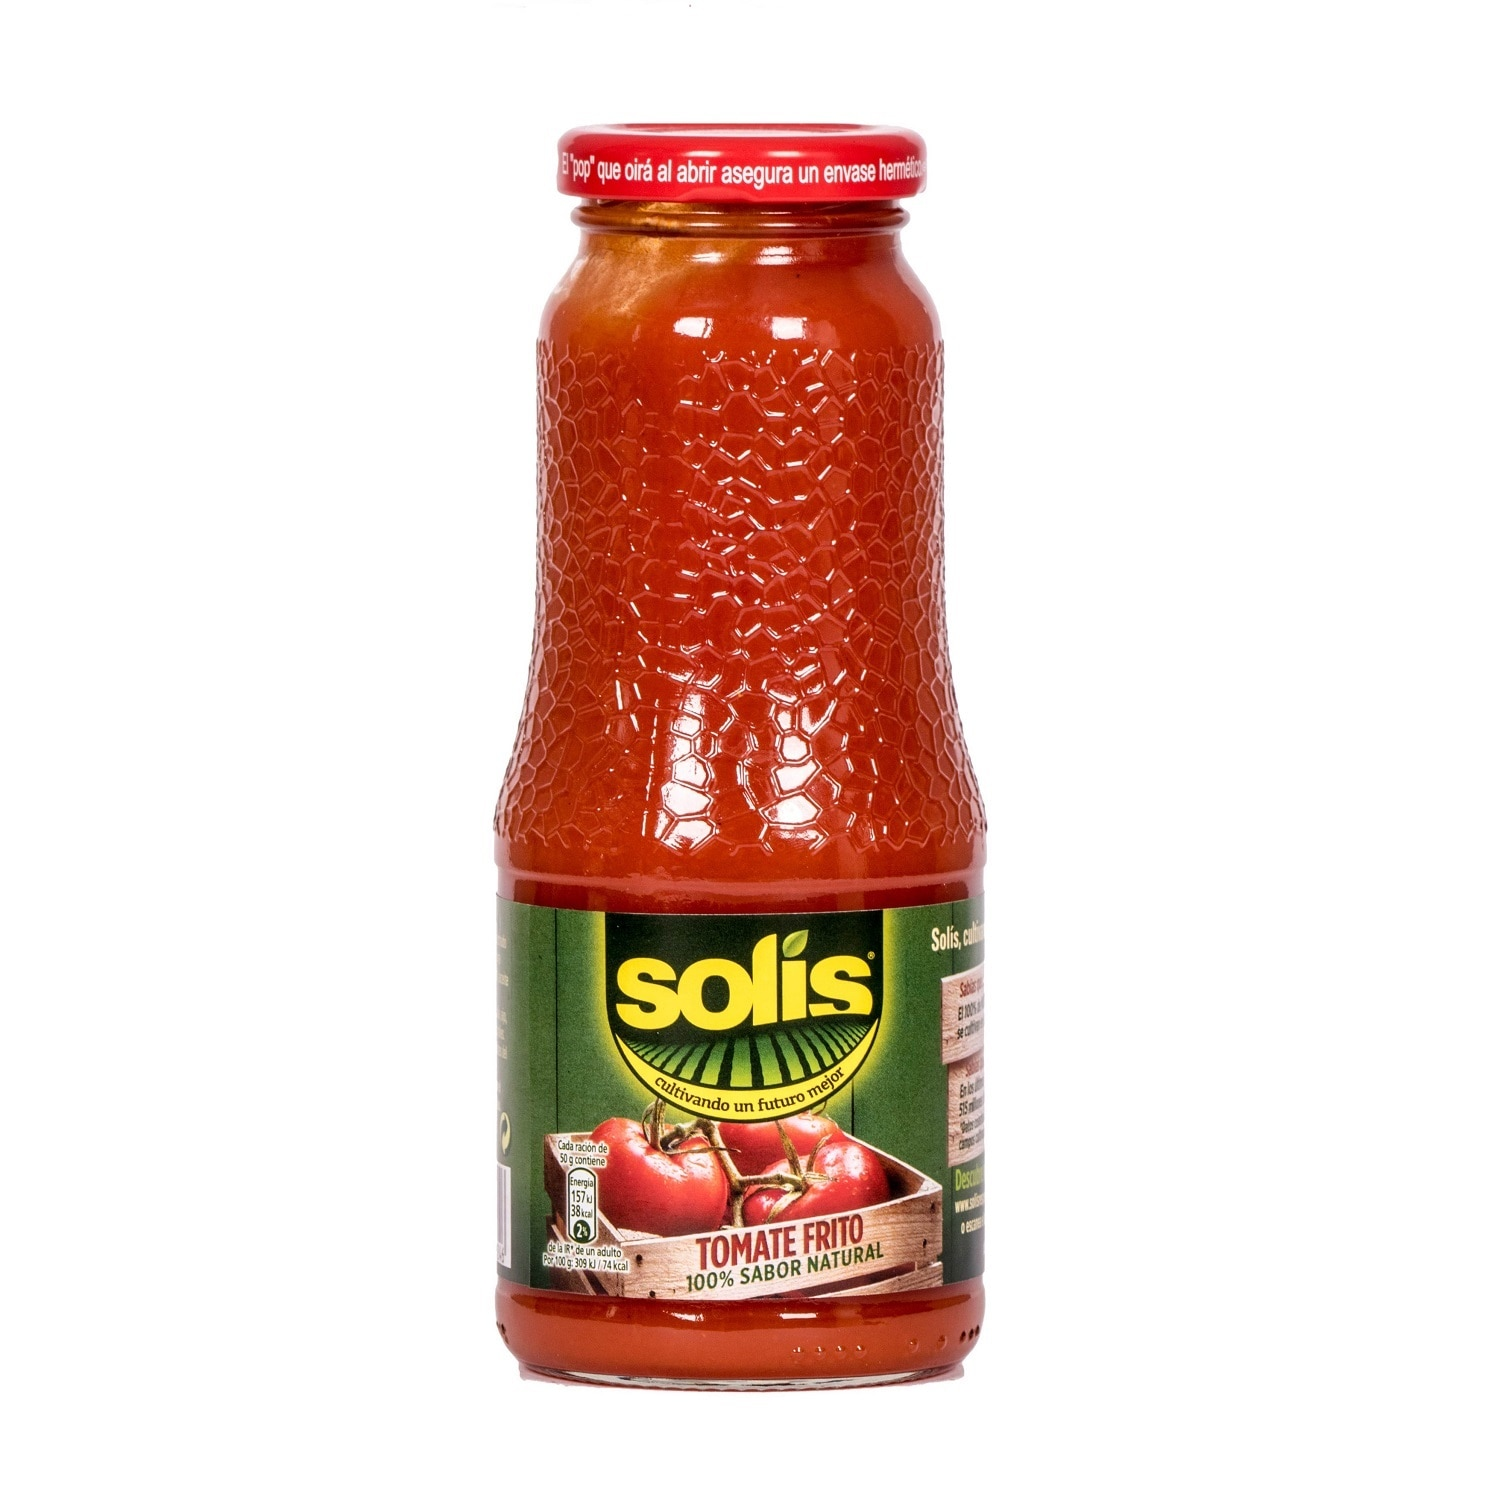 Solis Tomate Frito Tomatensauce 360g